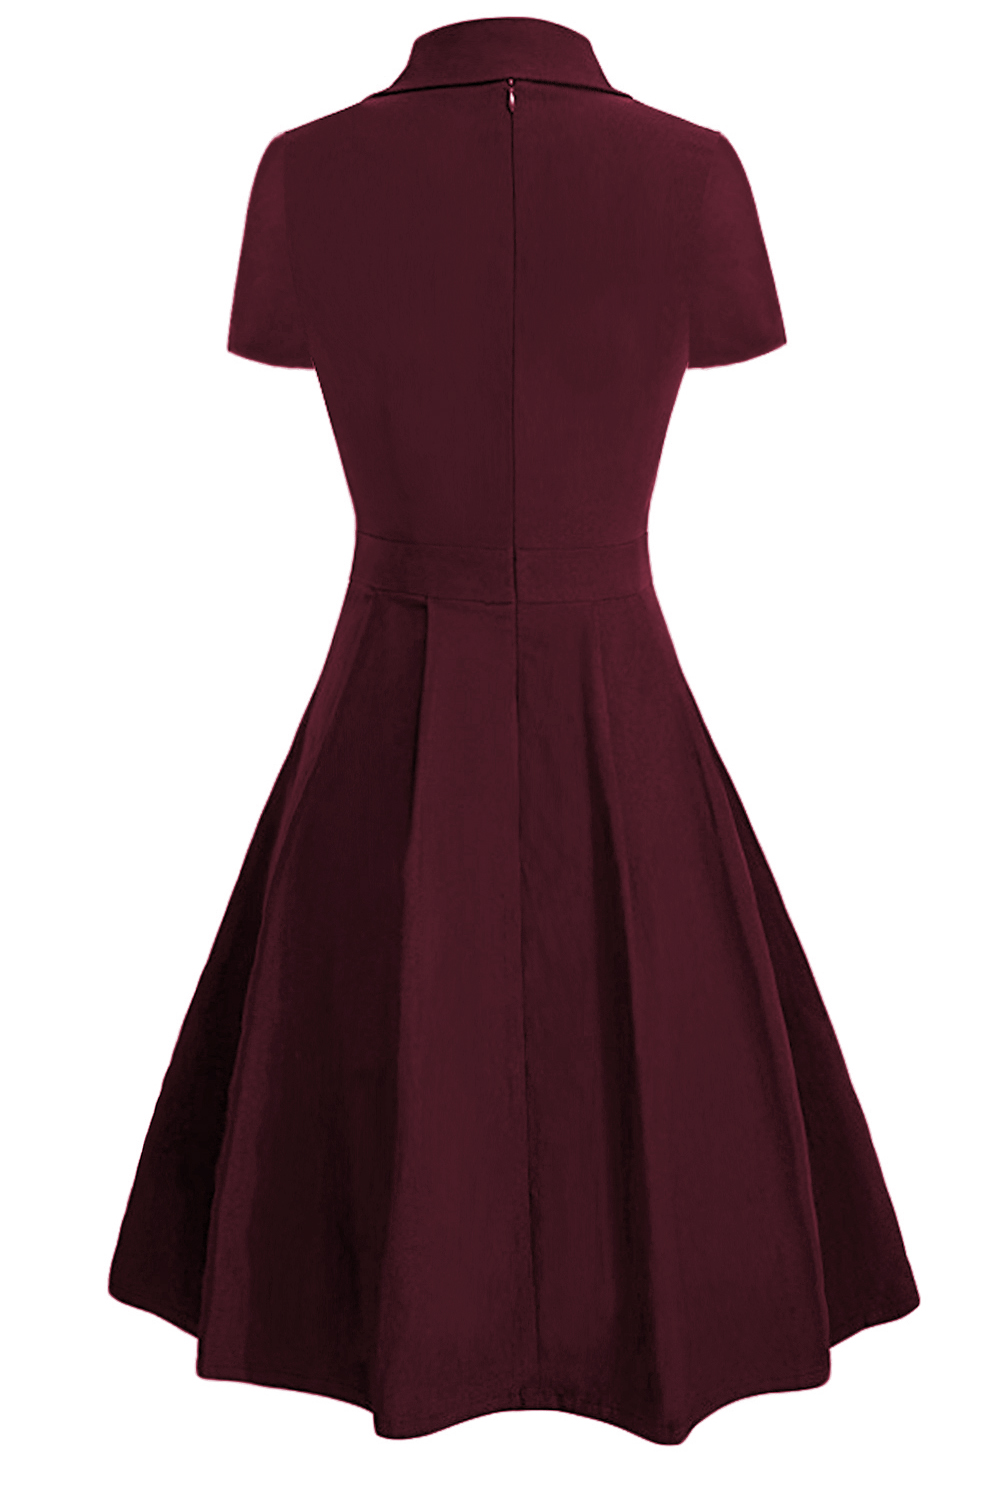 Aliexpress.com   Buy MisShow Burgundy Vintage Dress 2018 Turn down Collar  Short Sleeve Plus Size 4XL Women Dress Office Ladies Dresses Vestidos Mujer  from ... 55d5209eb888